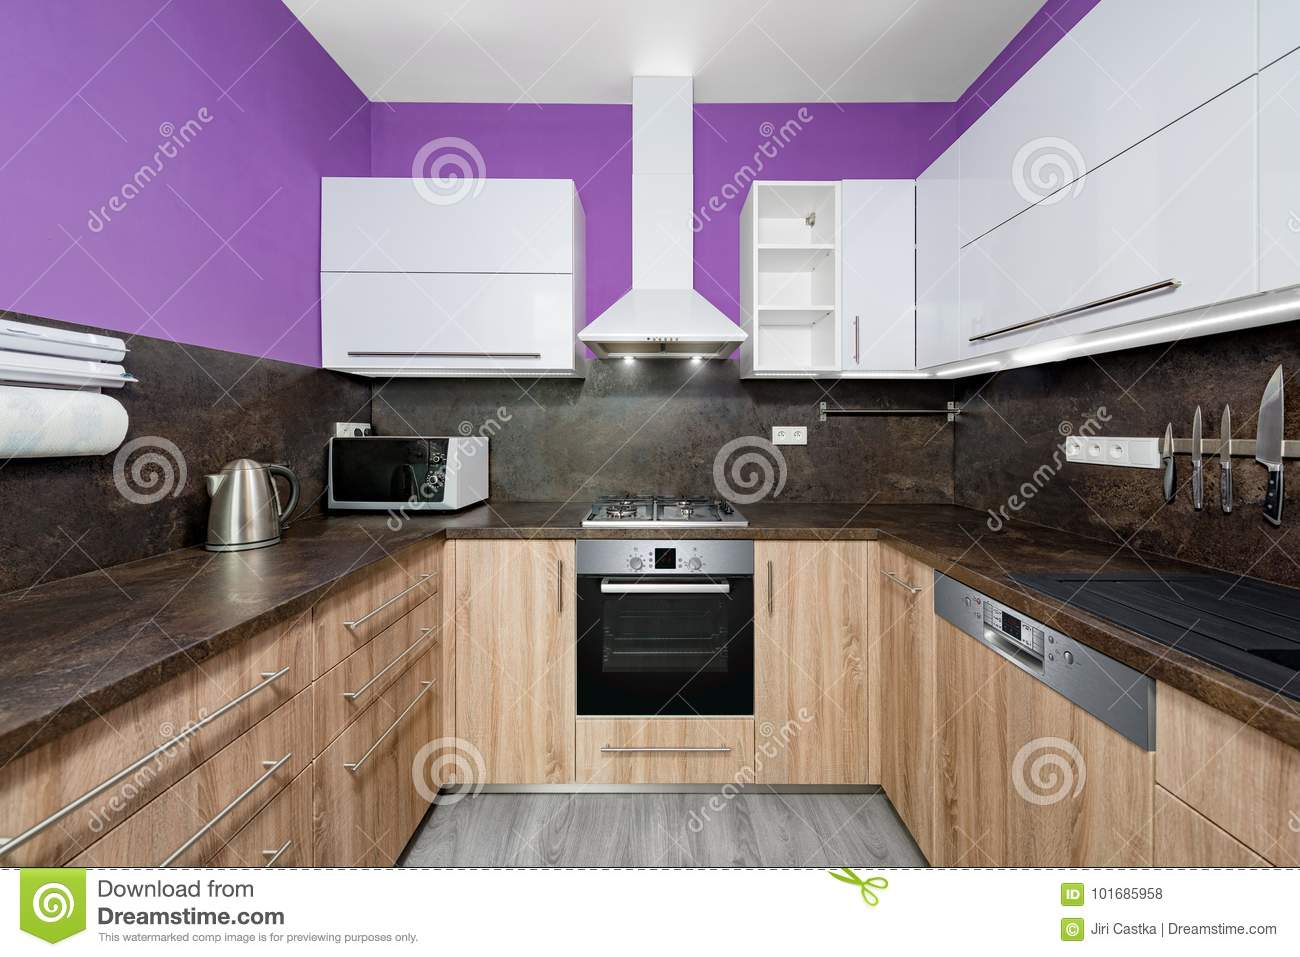 kitchen stock photo image of fridge modern furniture 101685958